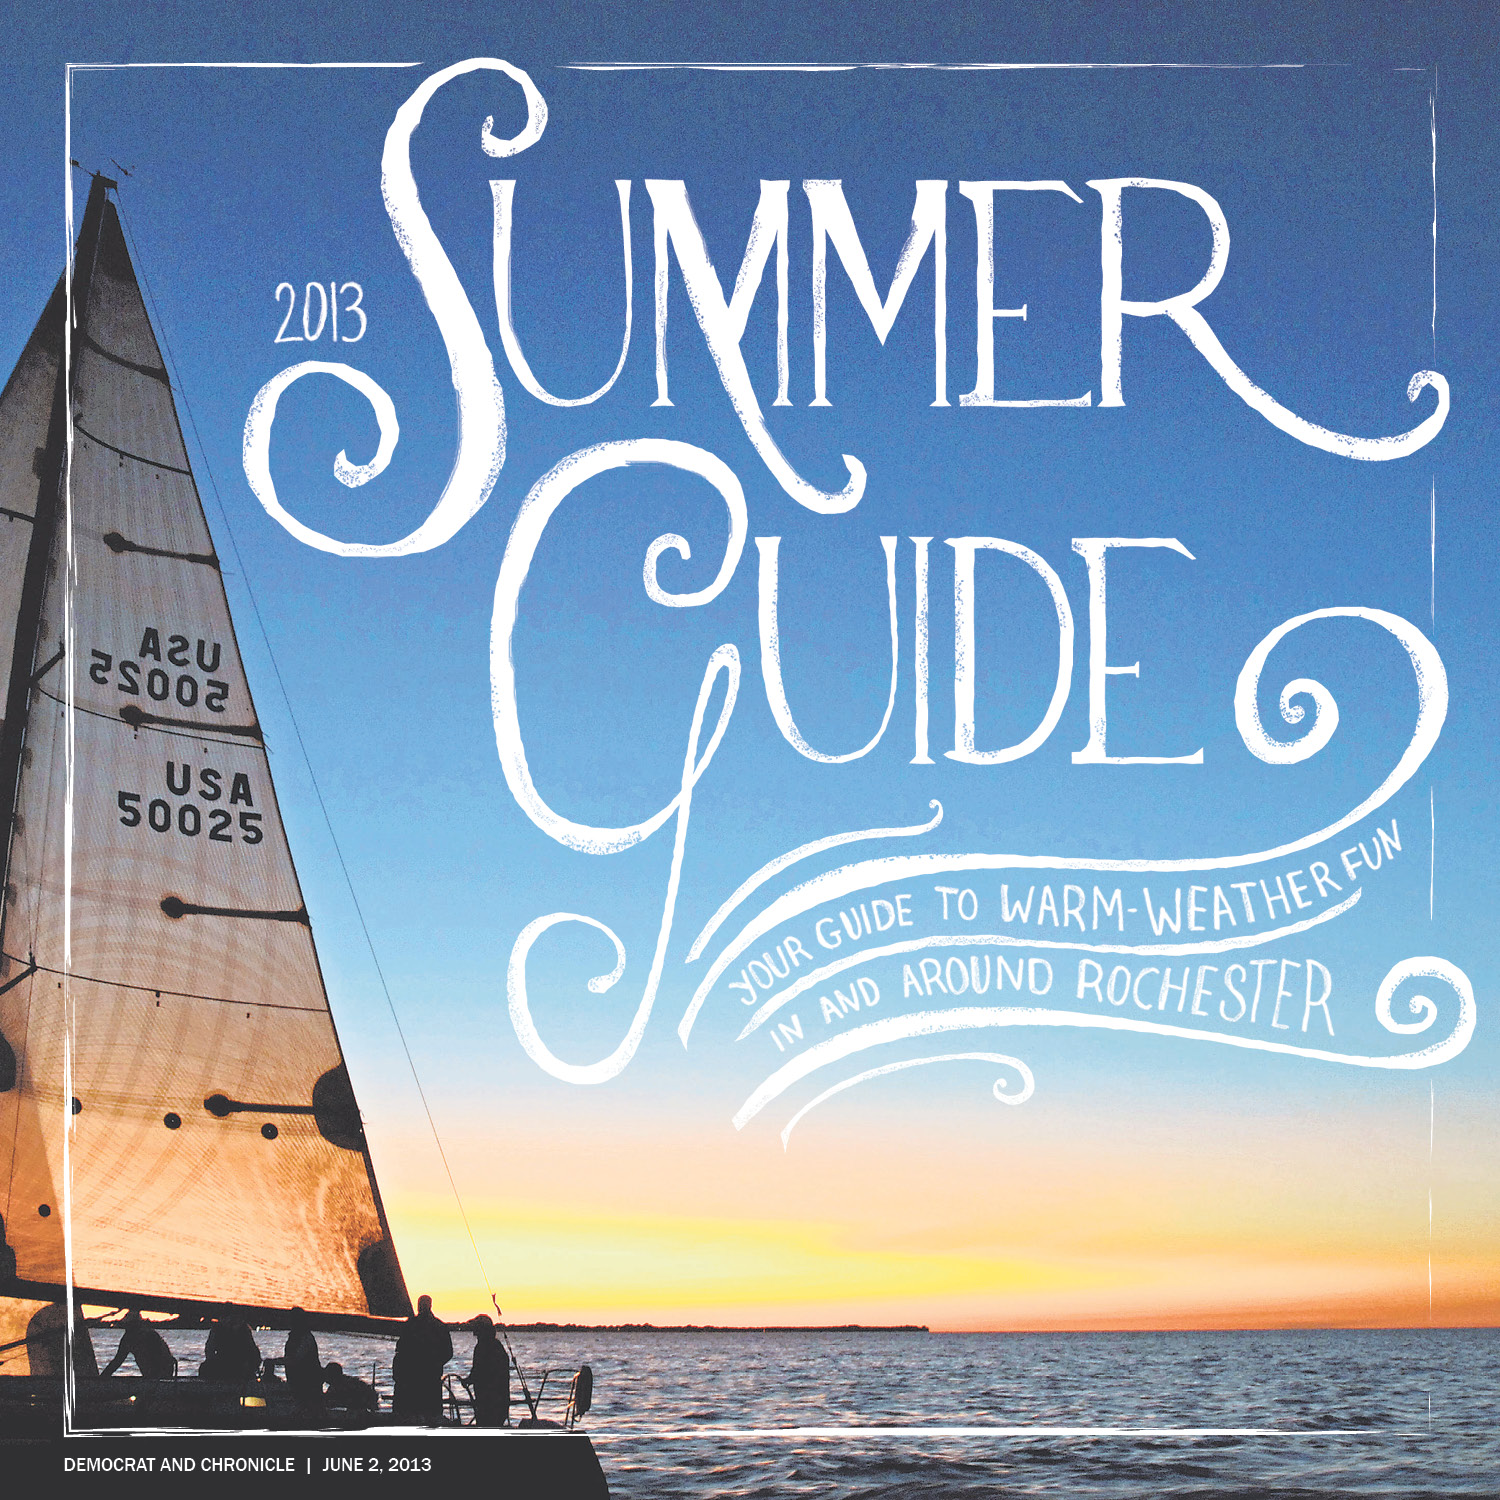 We didn't have many visuals to choose from for the annual Summer Guide special section. This image was the most colorful and visually appealing but still not compelling so I decided to handletter the copy to add interest.